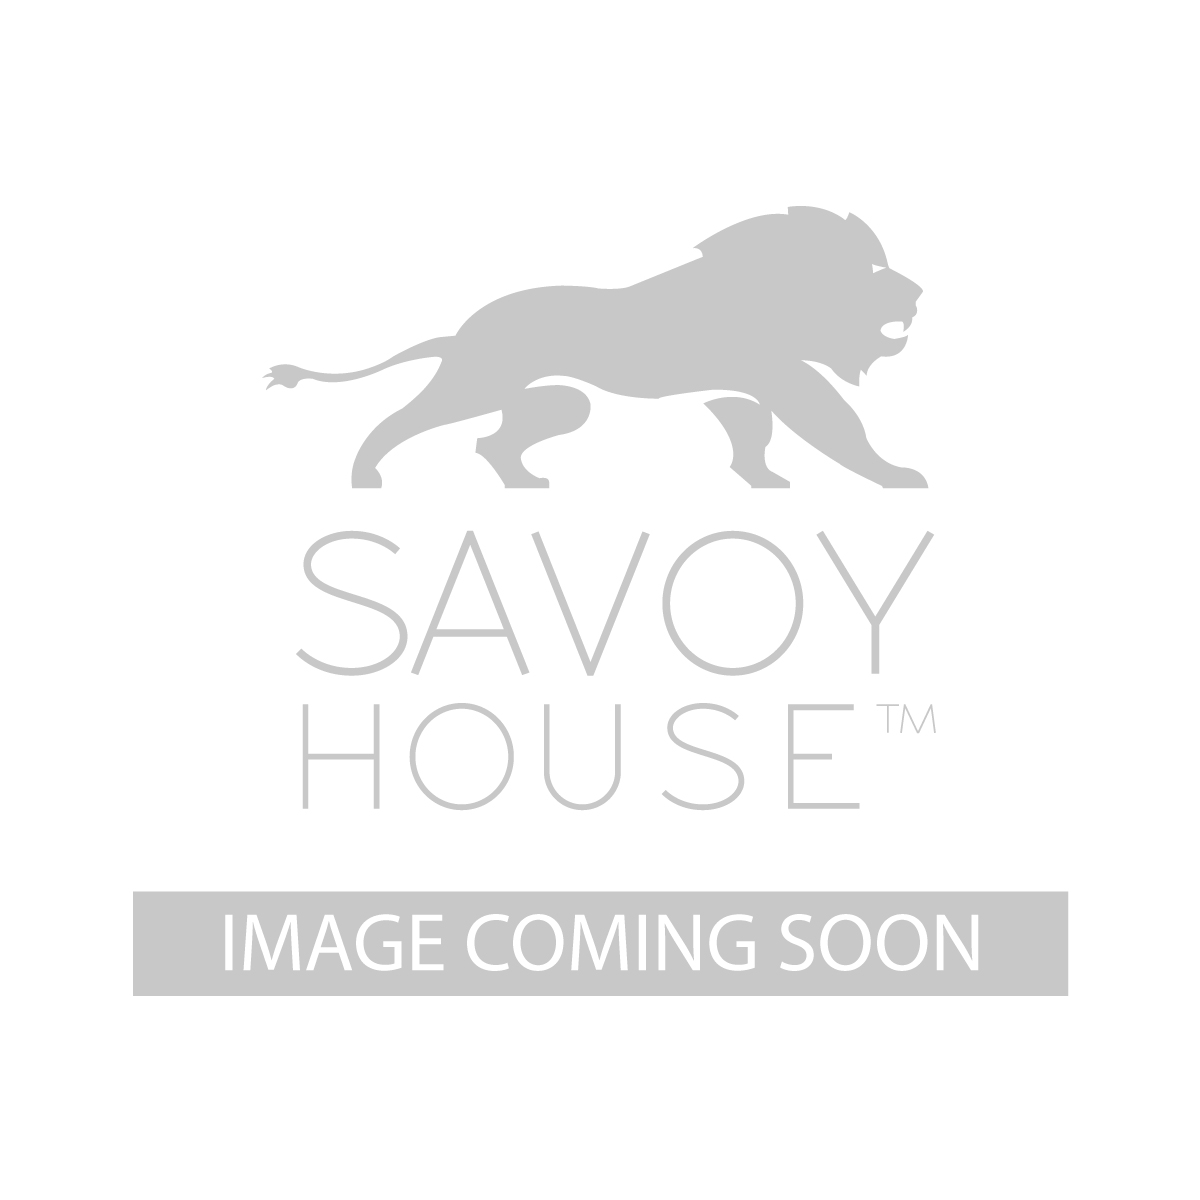 48 952 ca 13 circulaire discus 3 headed ceiling fan by savoy house circulaire discus 3 headed ceiling fan arubaitofo Choice Image